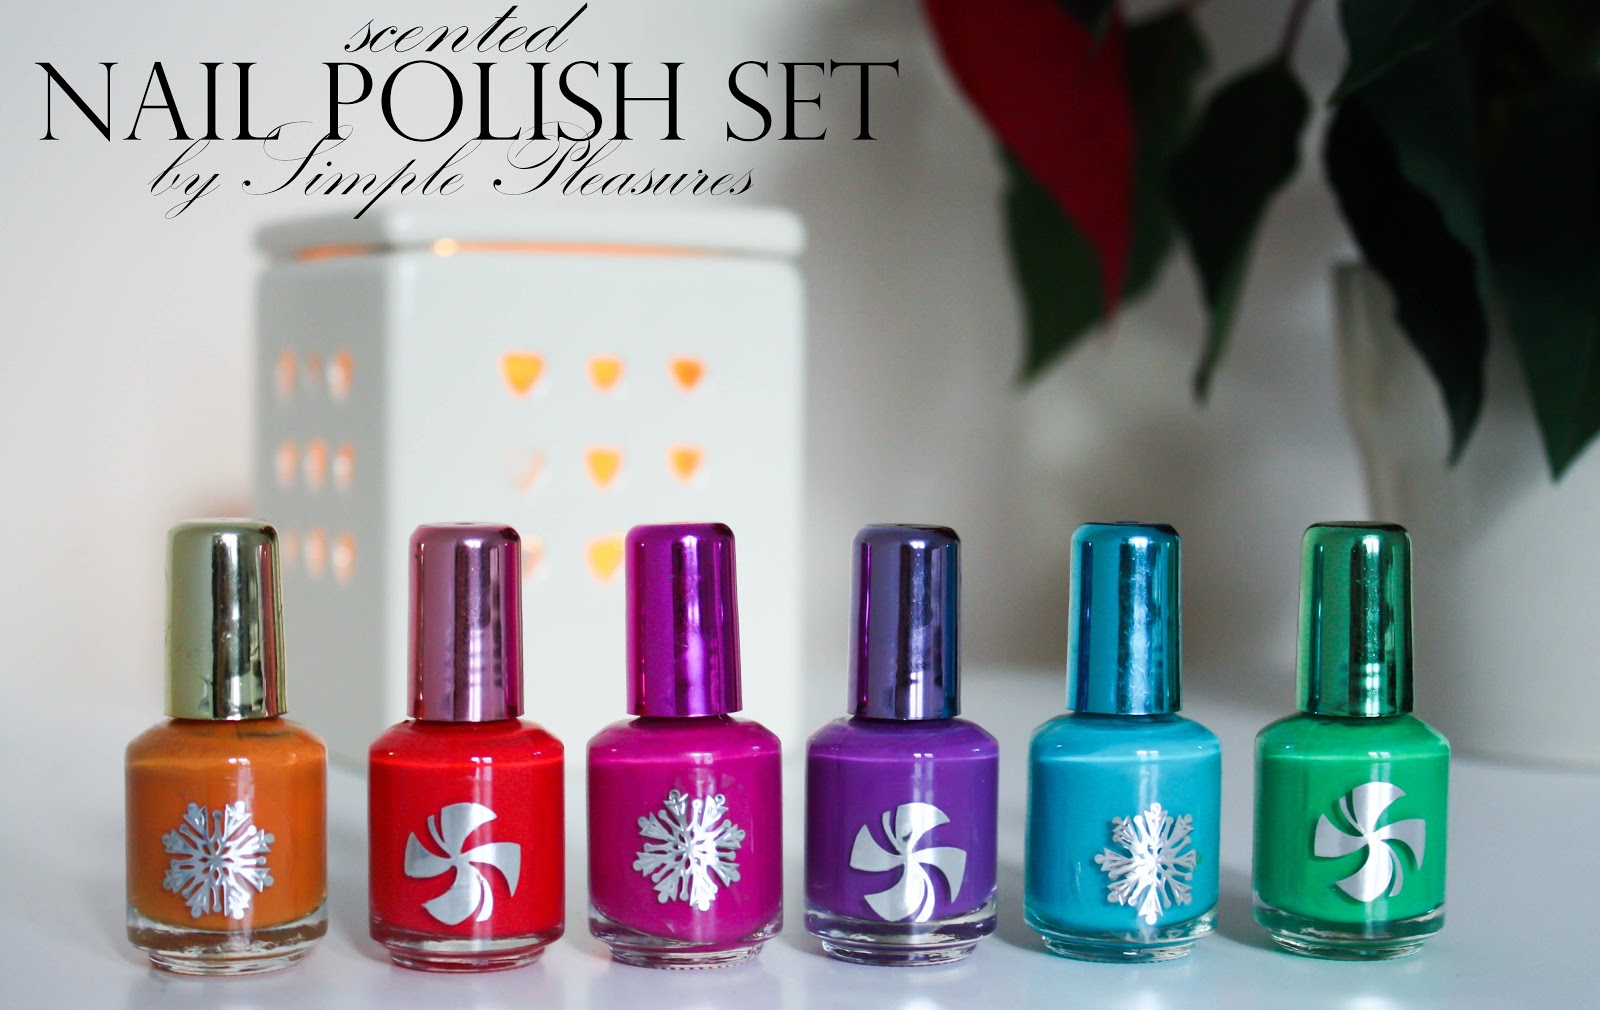 These Nail Polishes Are Just So Cute The Idea Of Christmas Scents Is Lovely They Come In A Set 6 Bottles 7 4ml Each Design